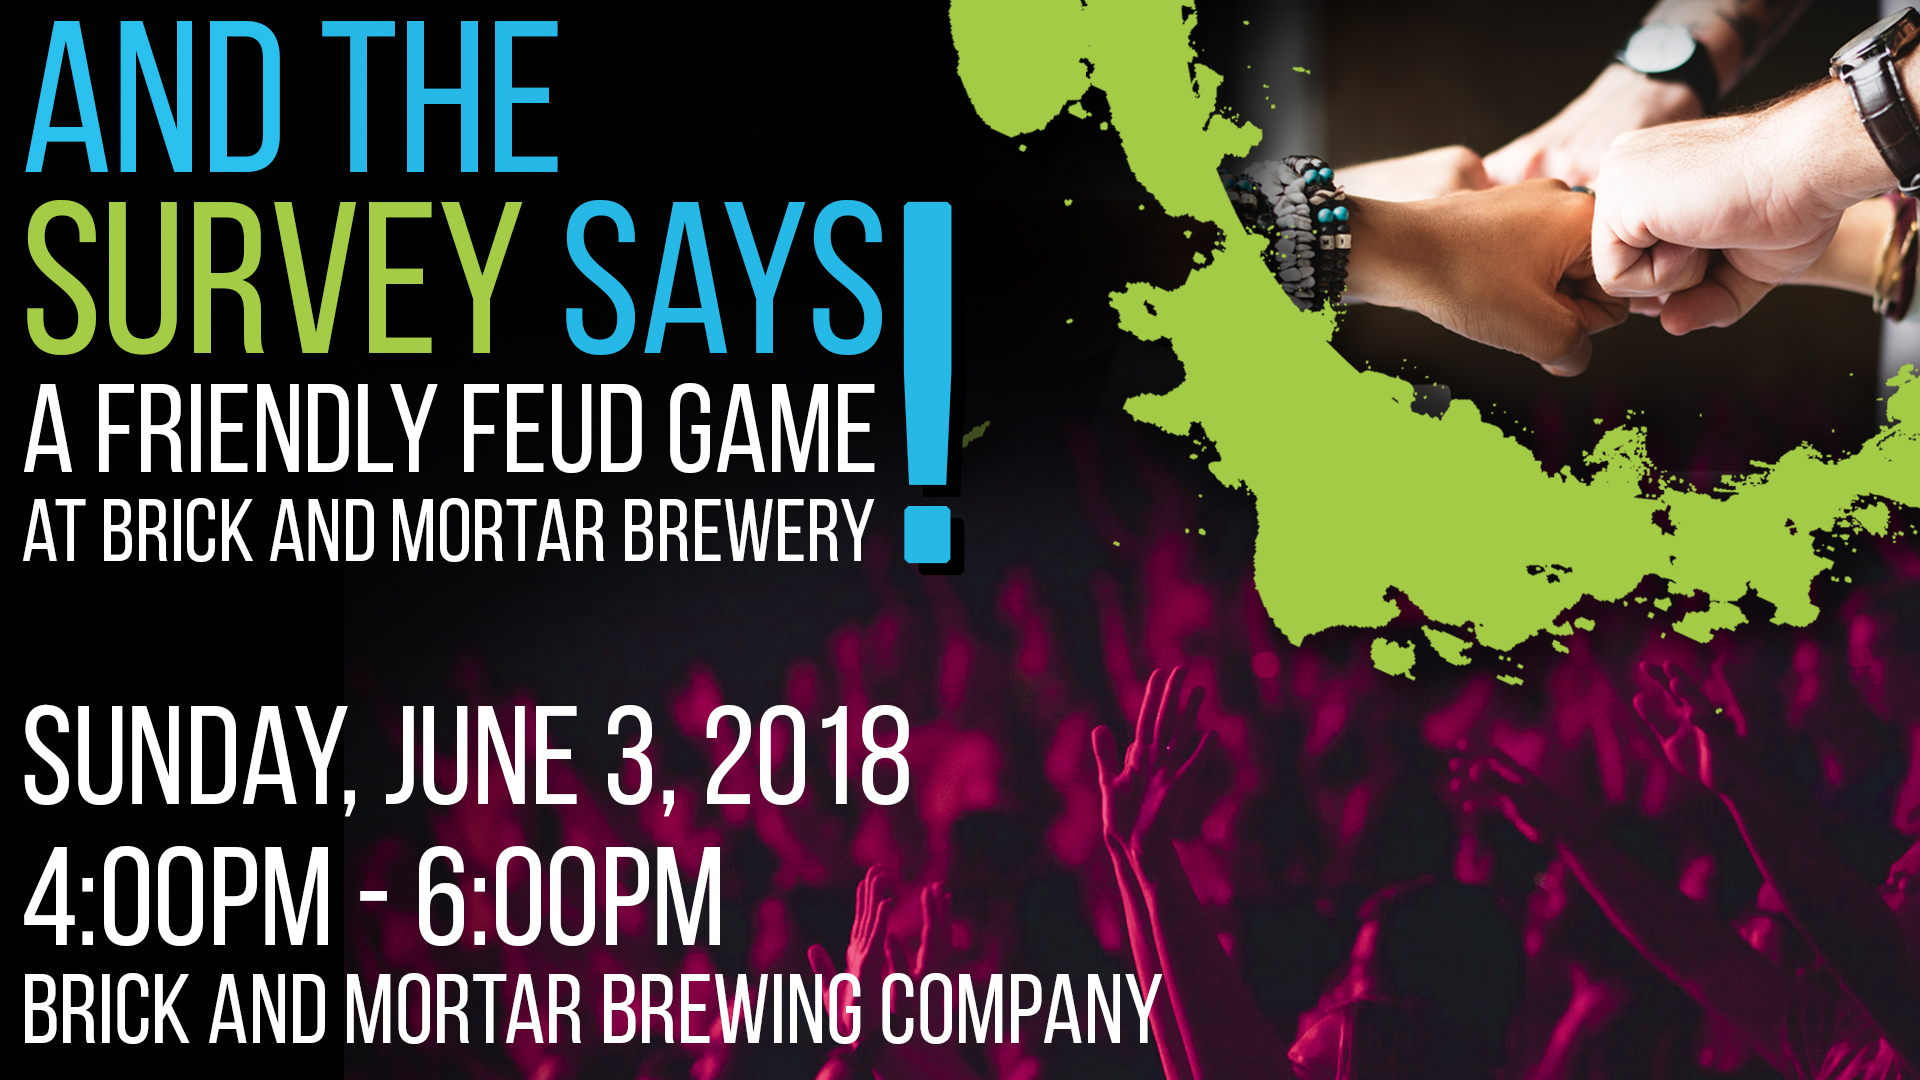 And the Survey Says! A Friendly Feud Game at Brick and Mortar Brewery